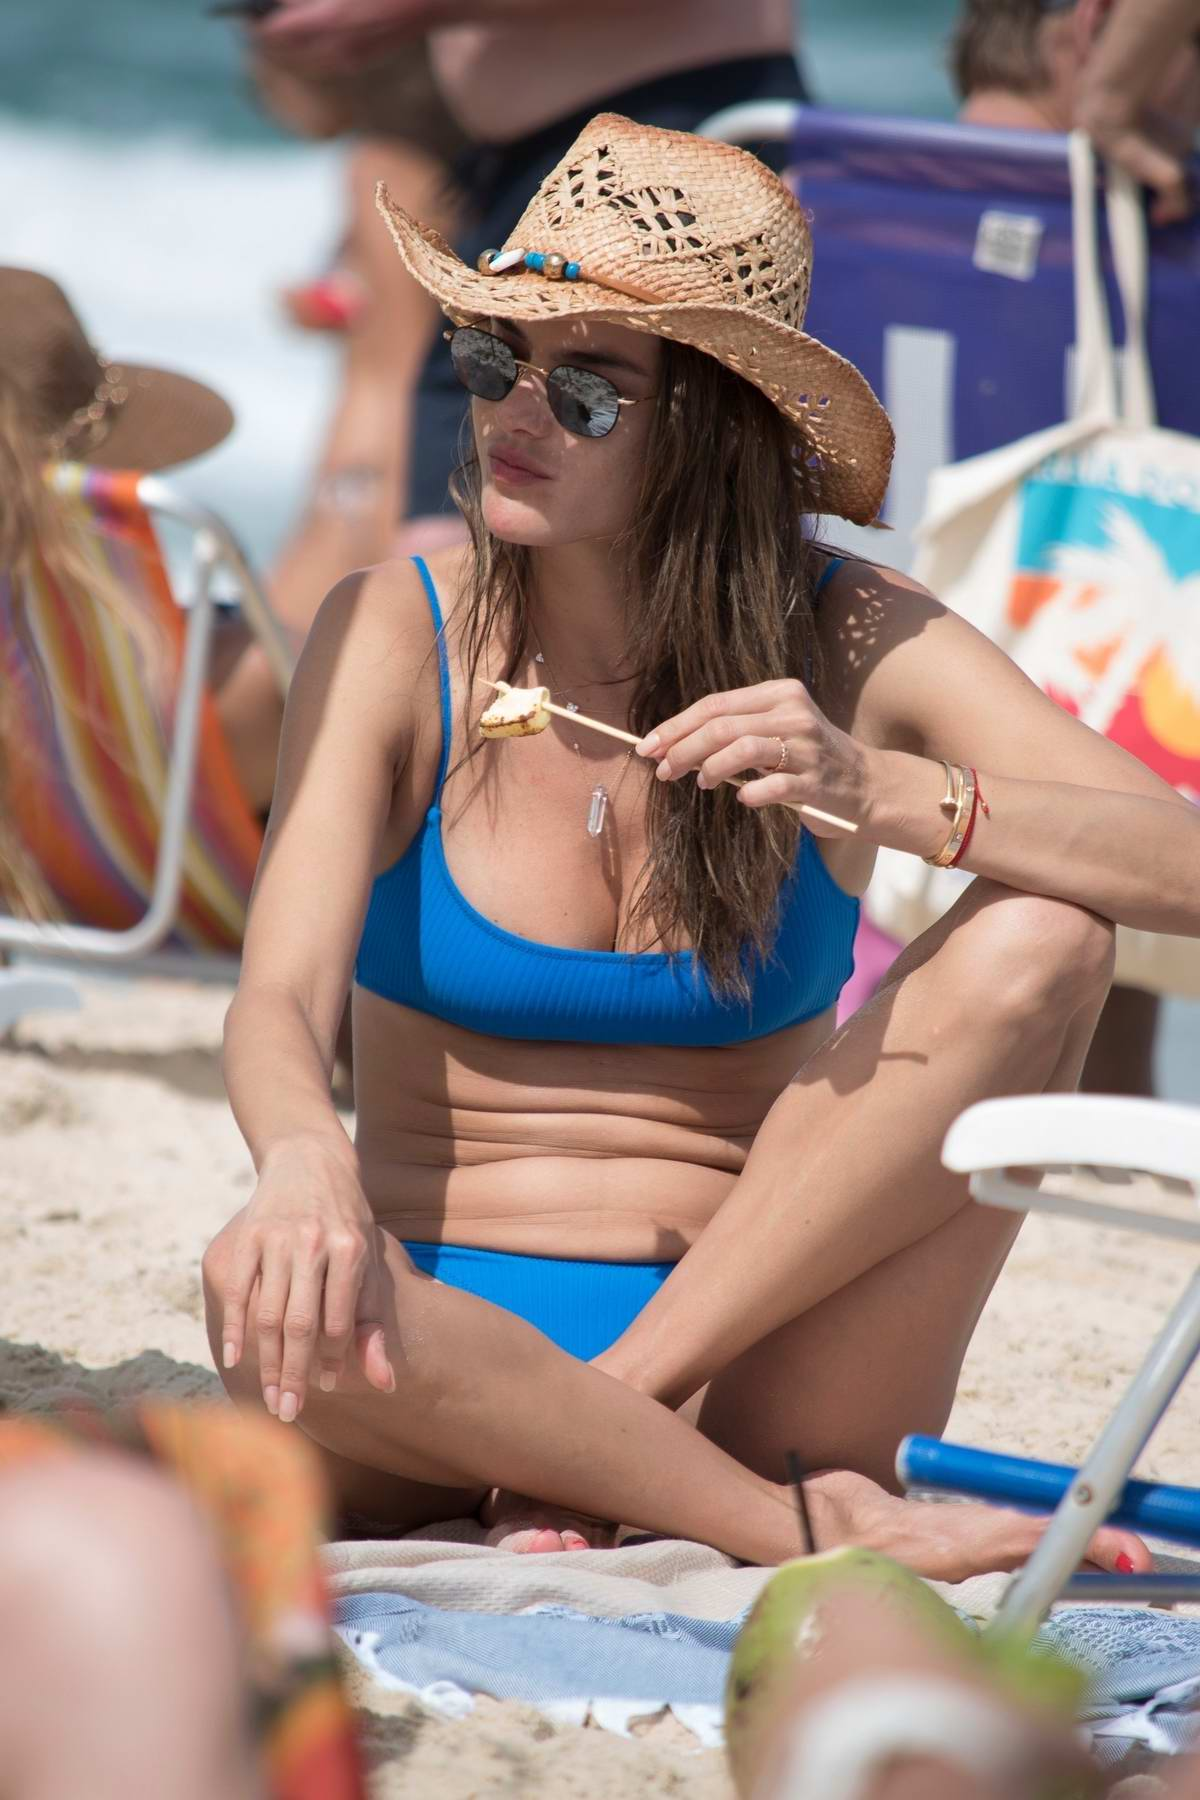 Alessandra Ambrosio spotted in a blue bikini while spending beach day with boyfriend Nicolo Oddi in Florianopolis, Brazil